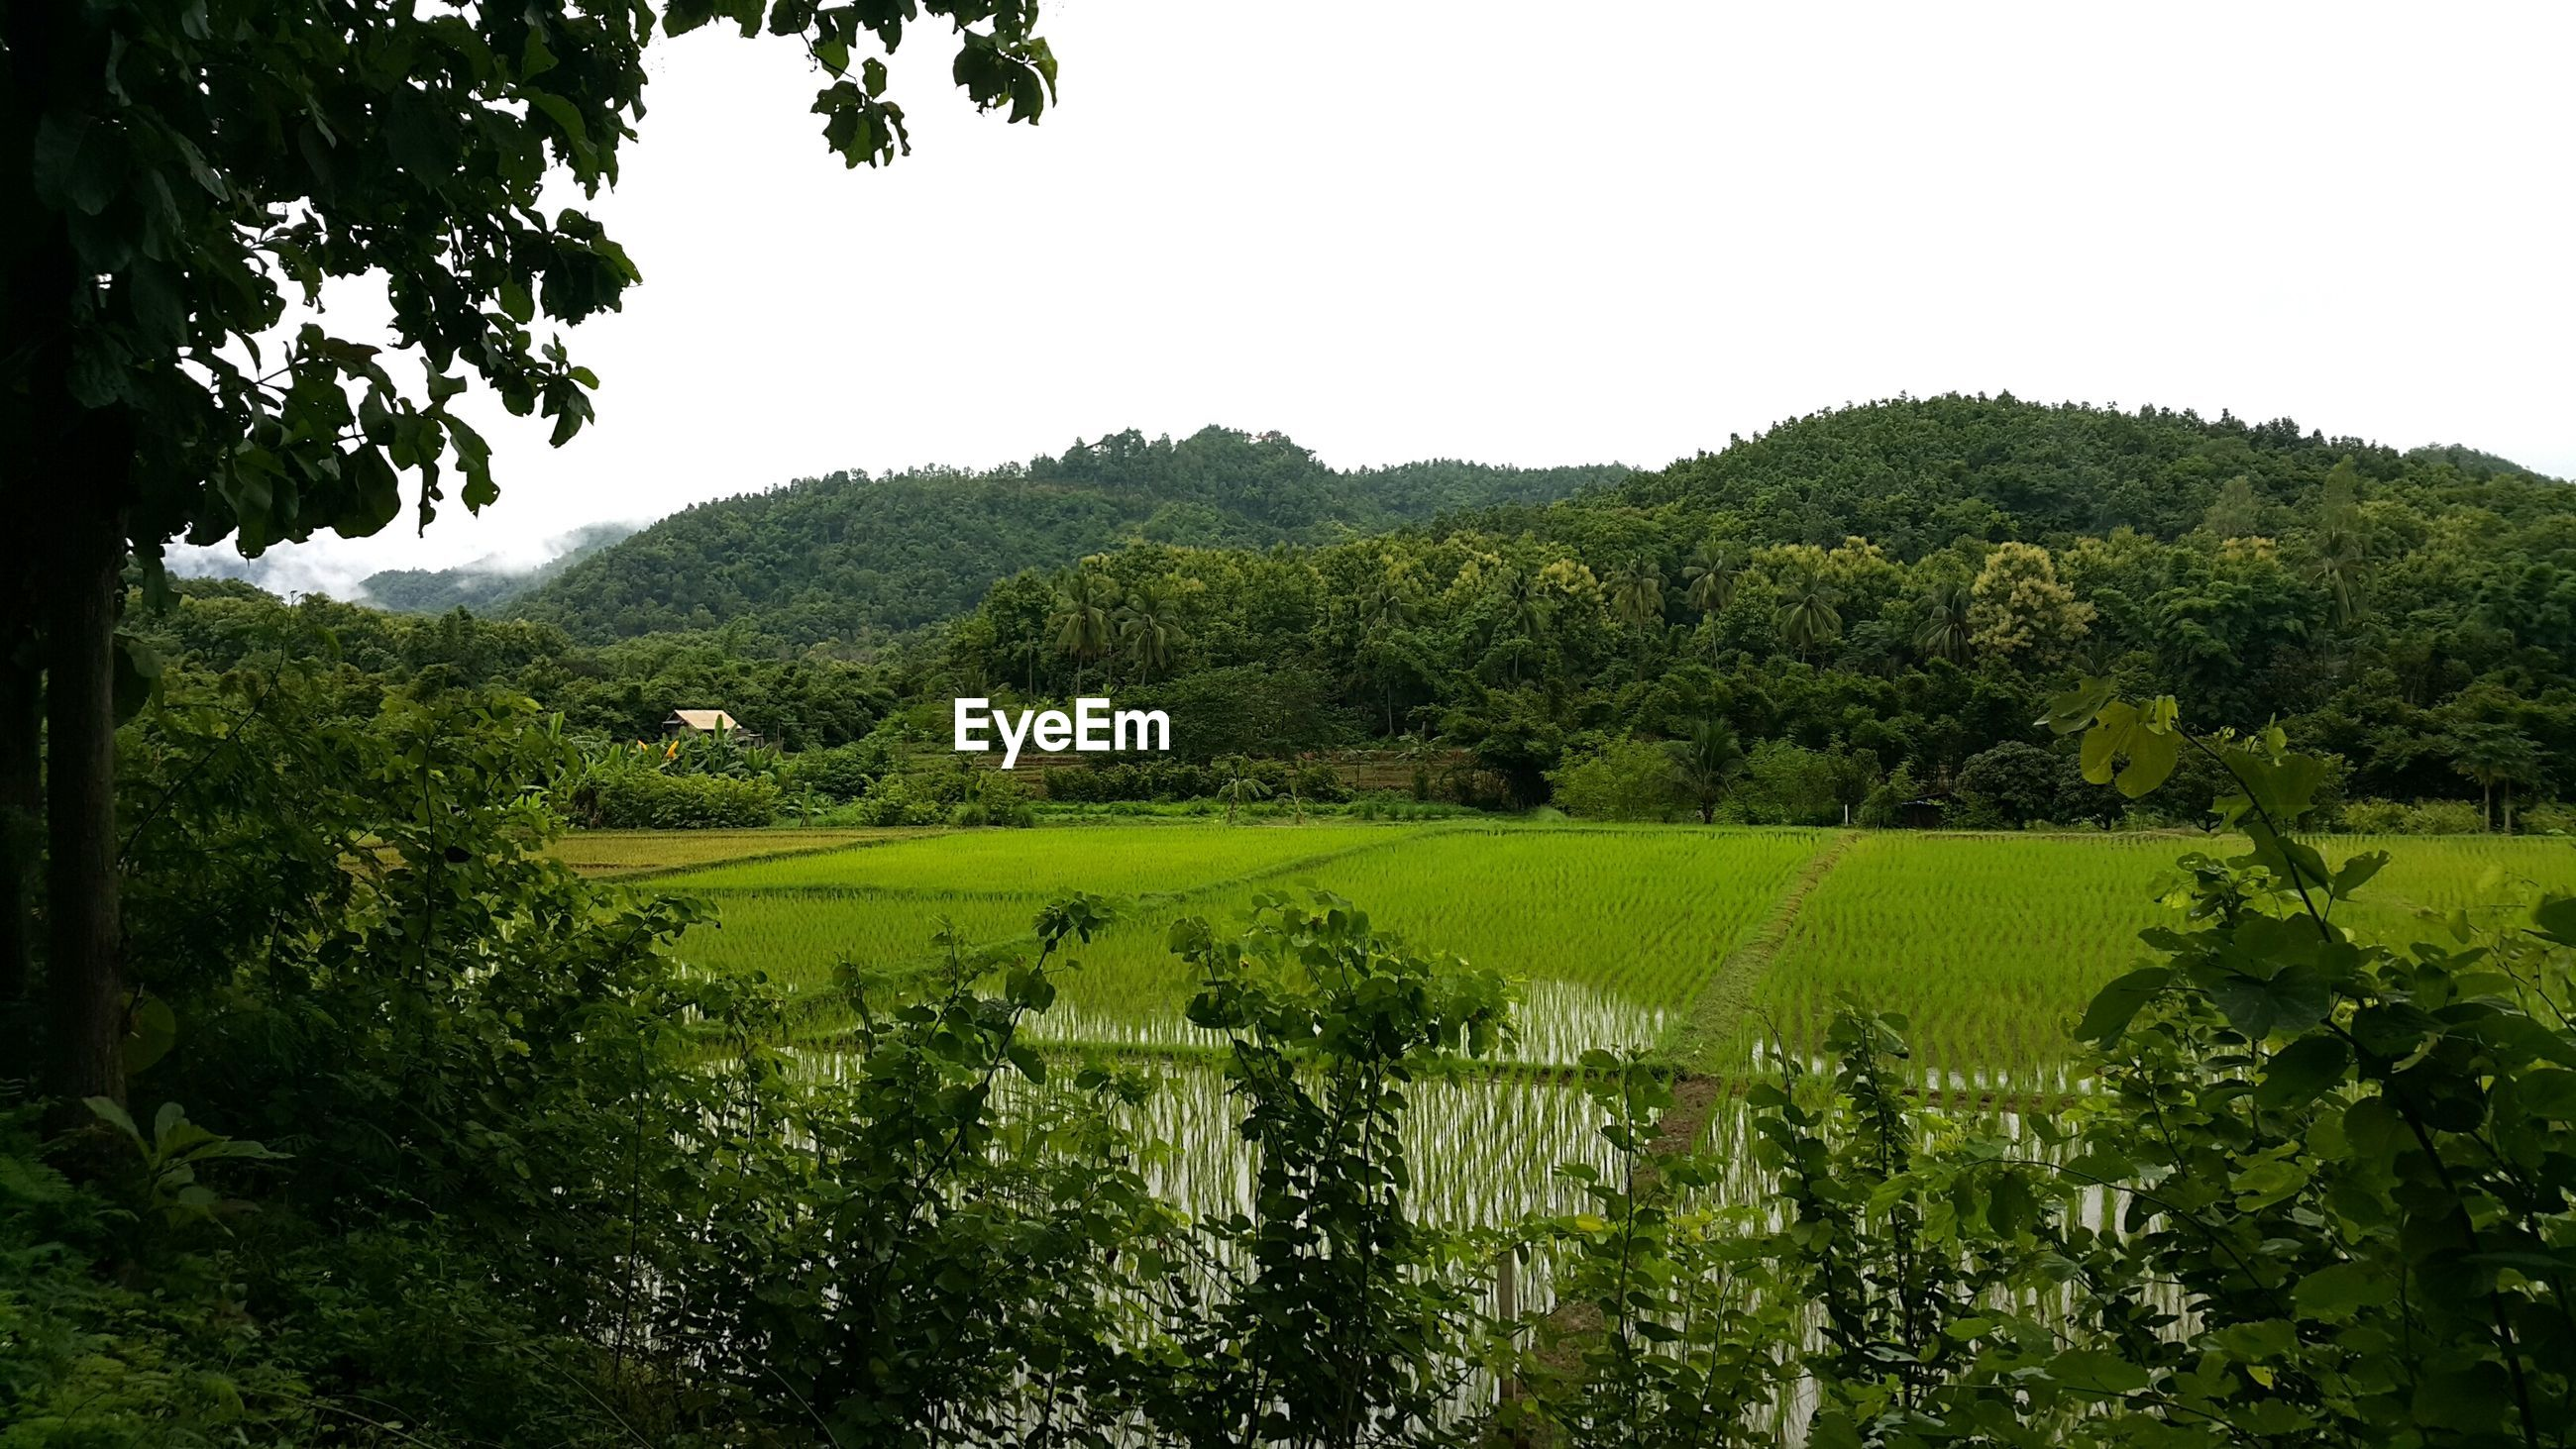 SCENIC VIEW OF GREEN LANDSCAPE AGAINST CLEAR SKY